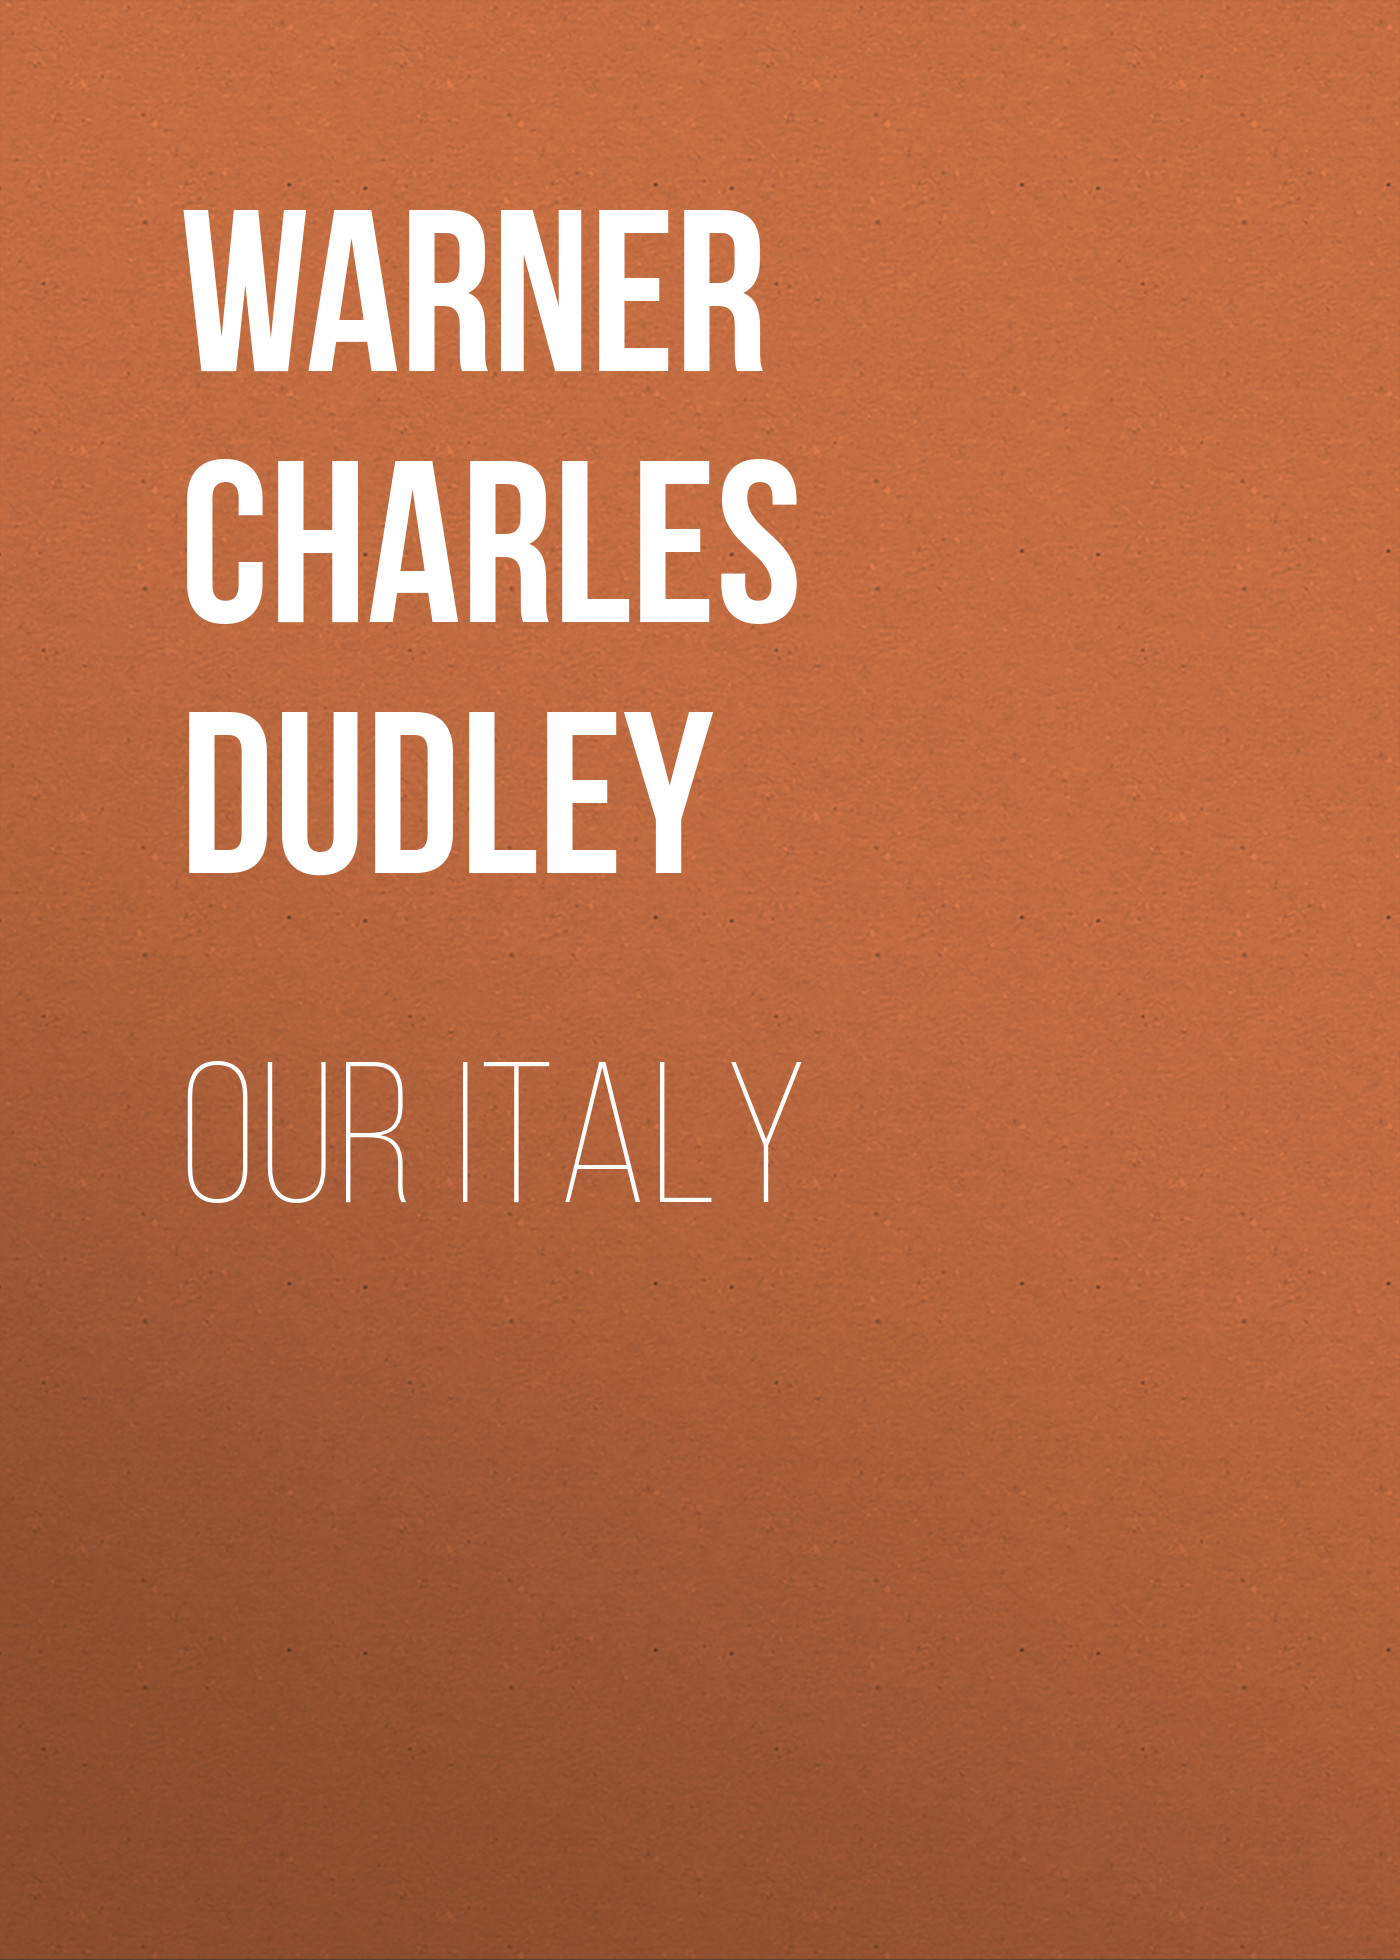 Фото - Warner Charles Dudley Our Italy warner charles dudley studies in the south and west with comments on canada